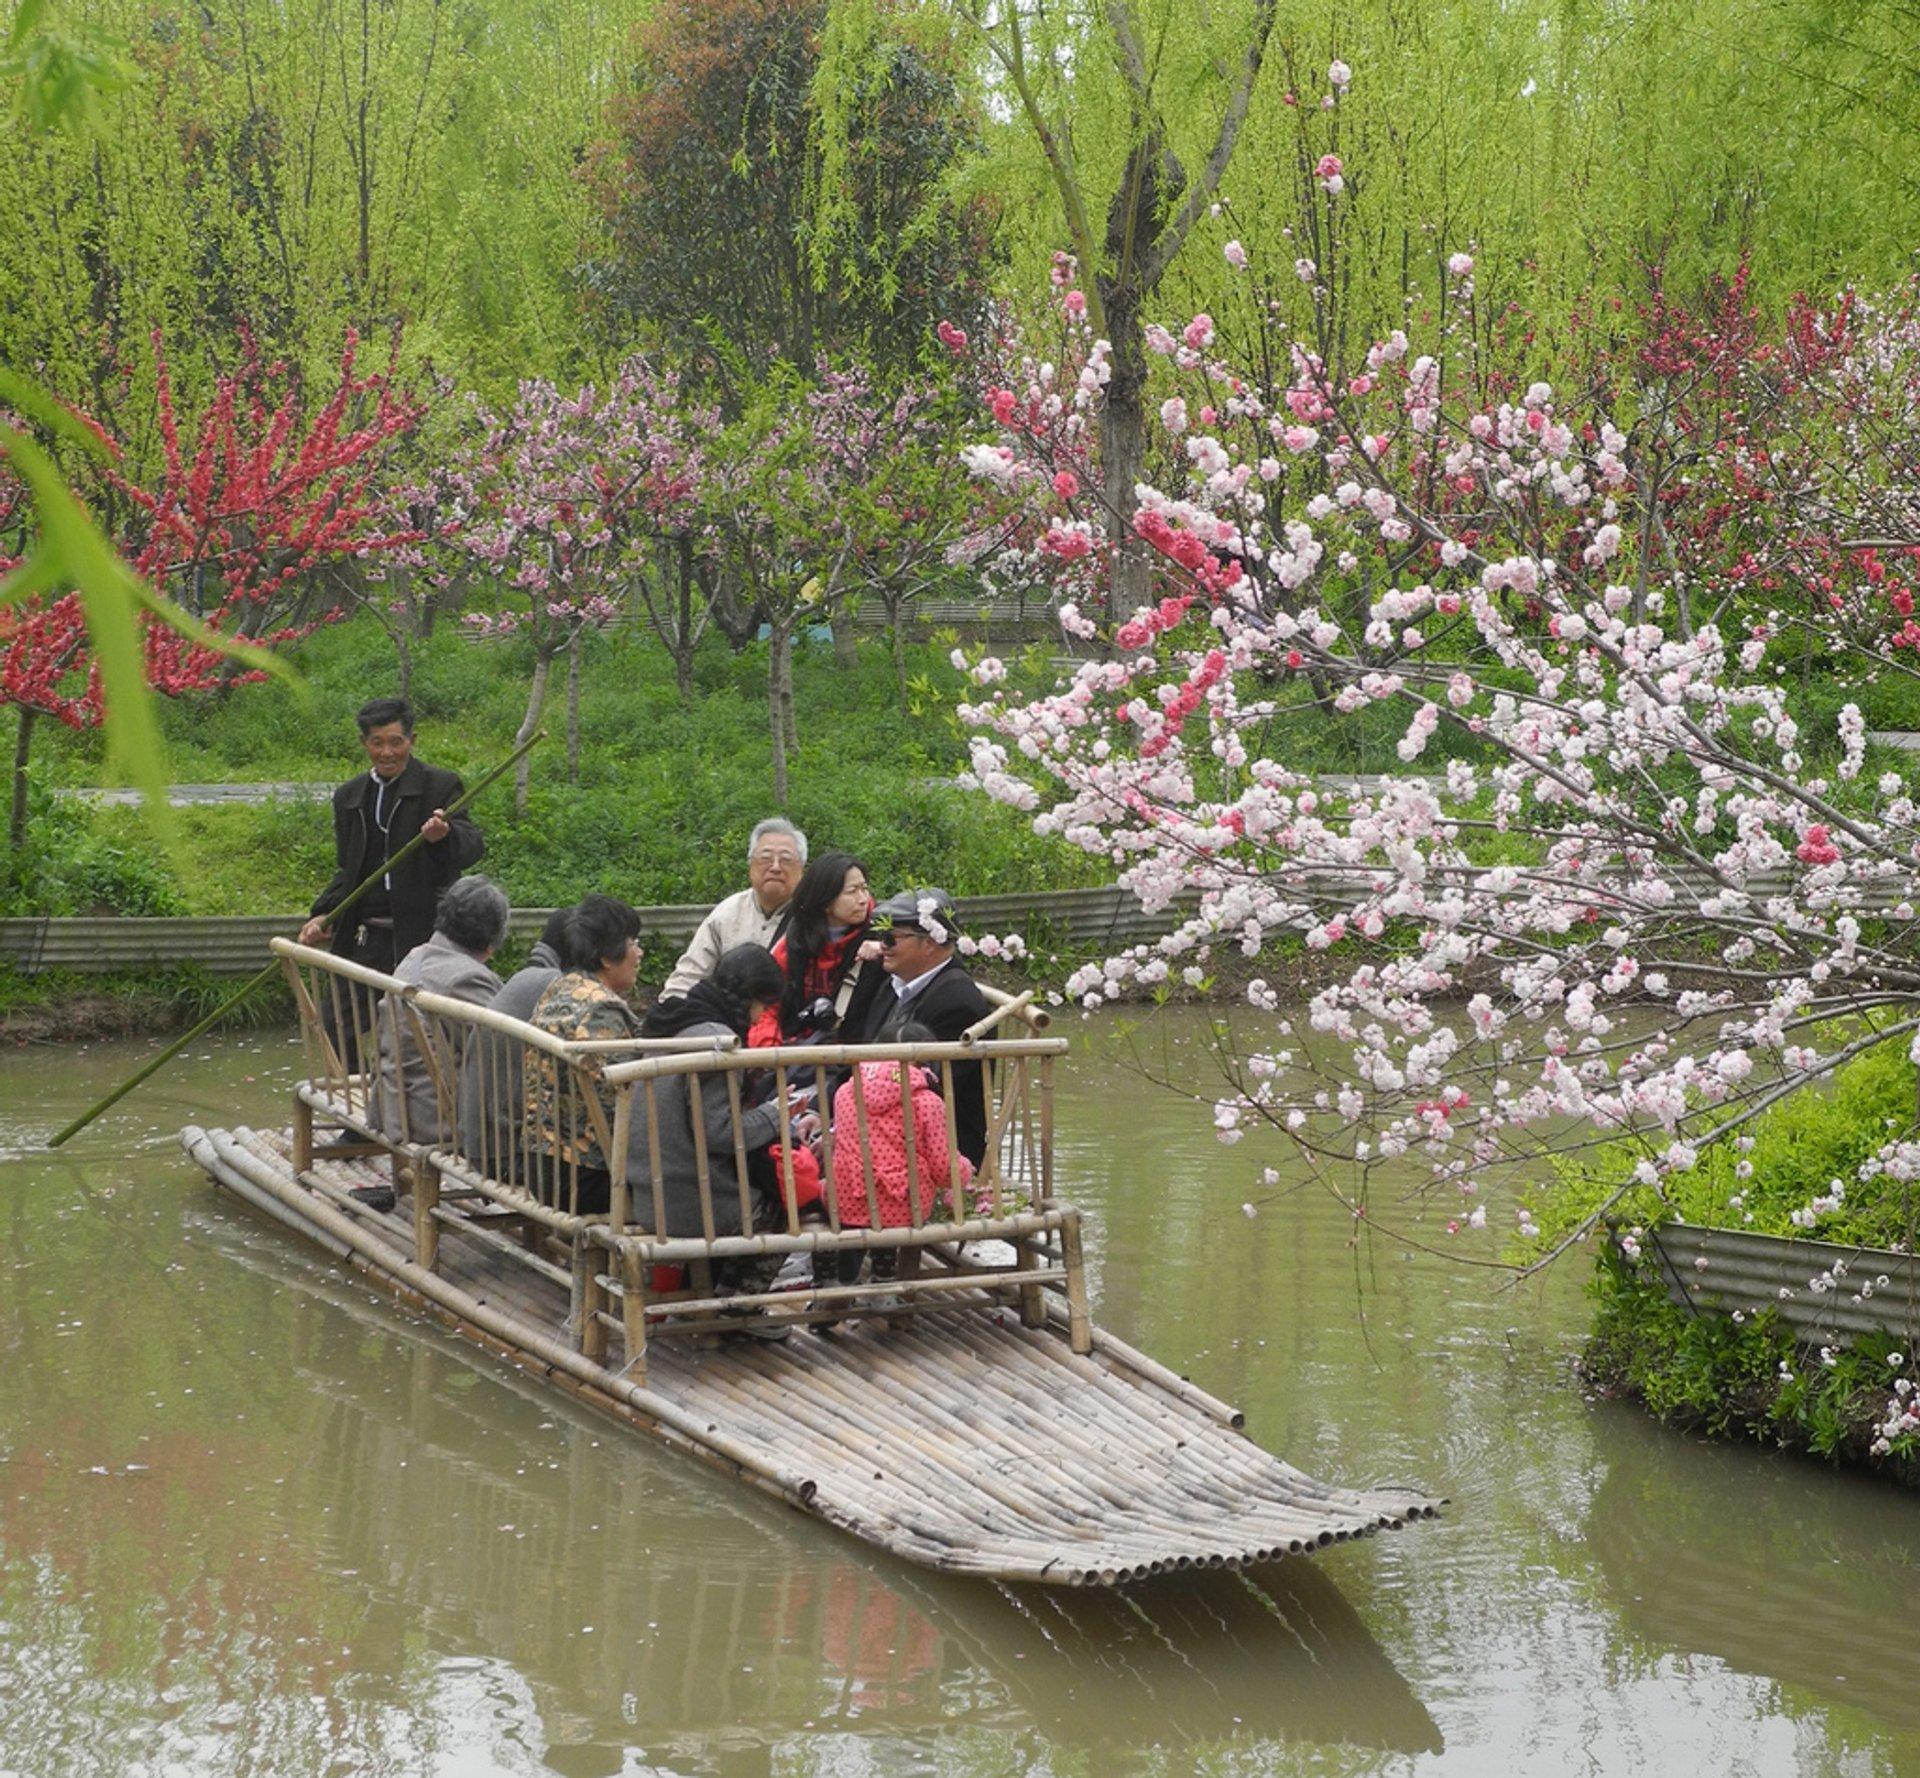 Floating at the Nanhui Peach Blossom Festival in Nanhui, China 2019